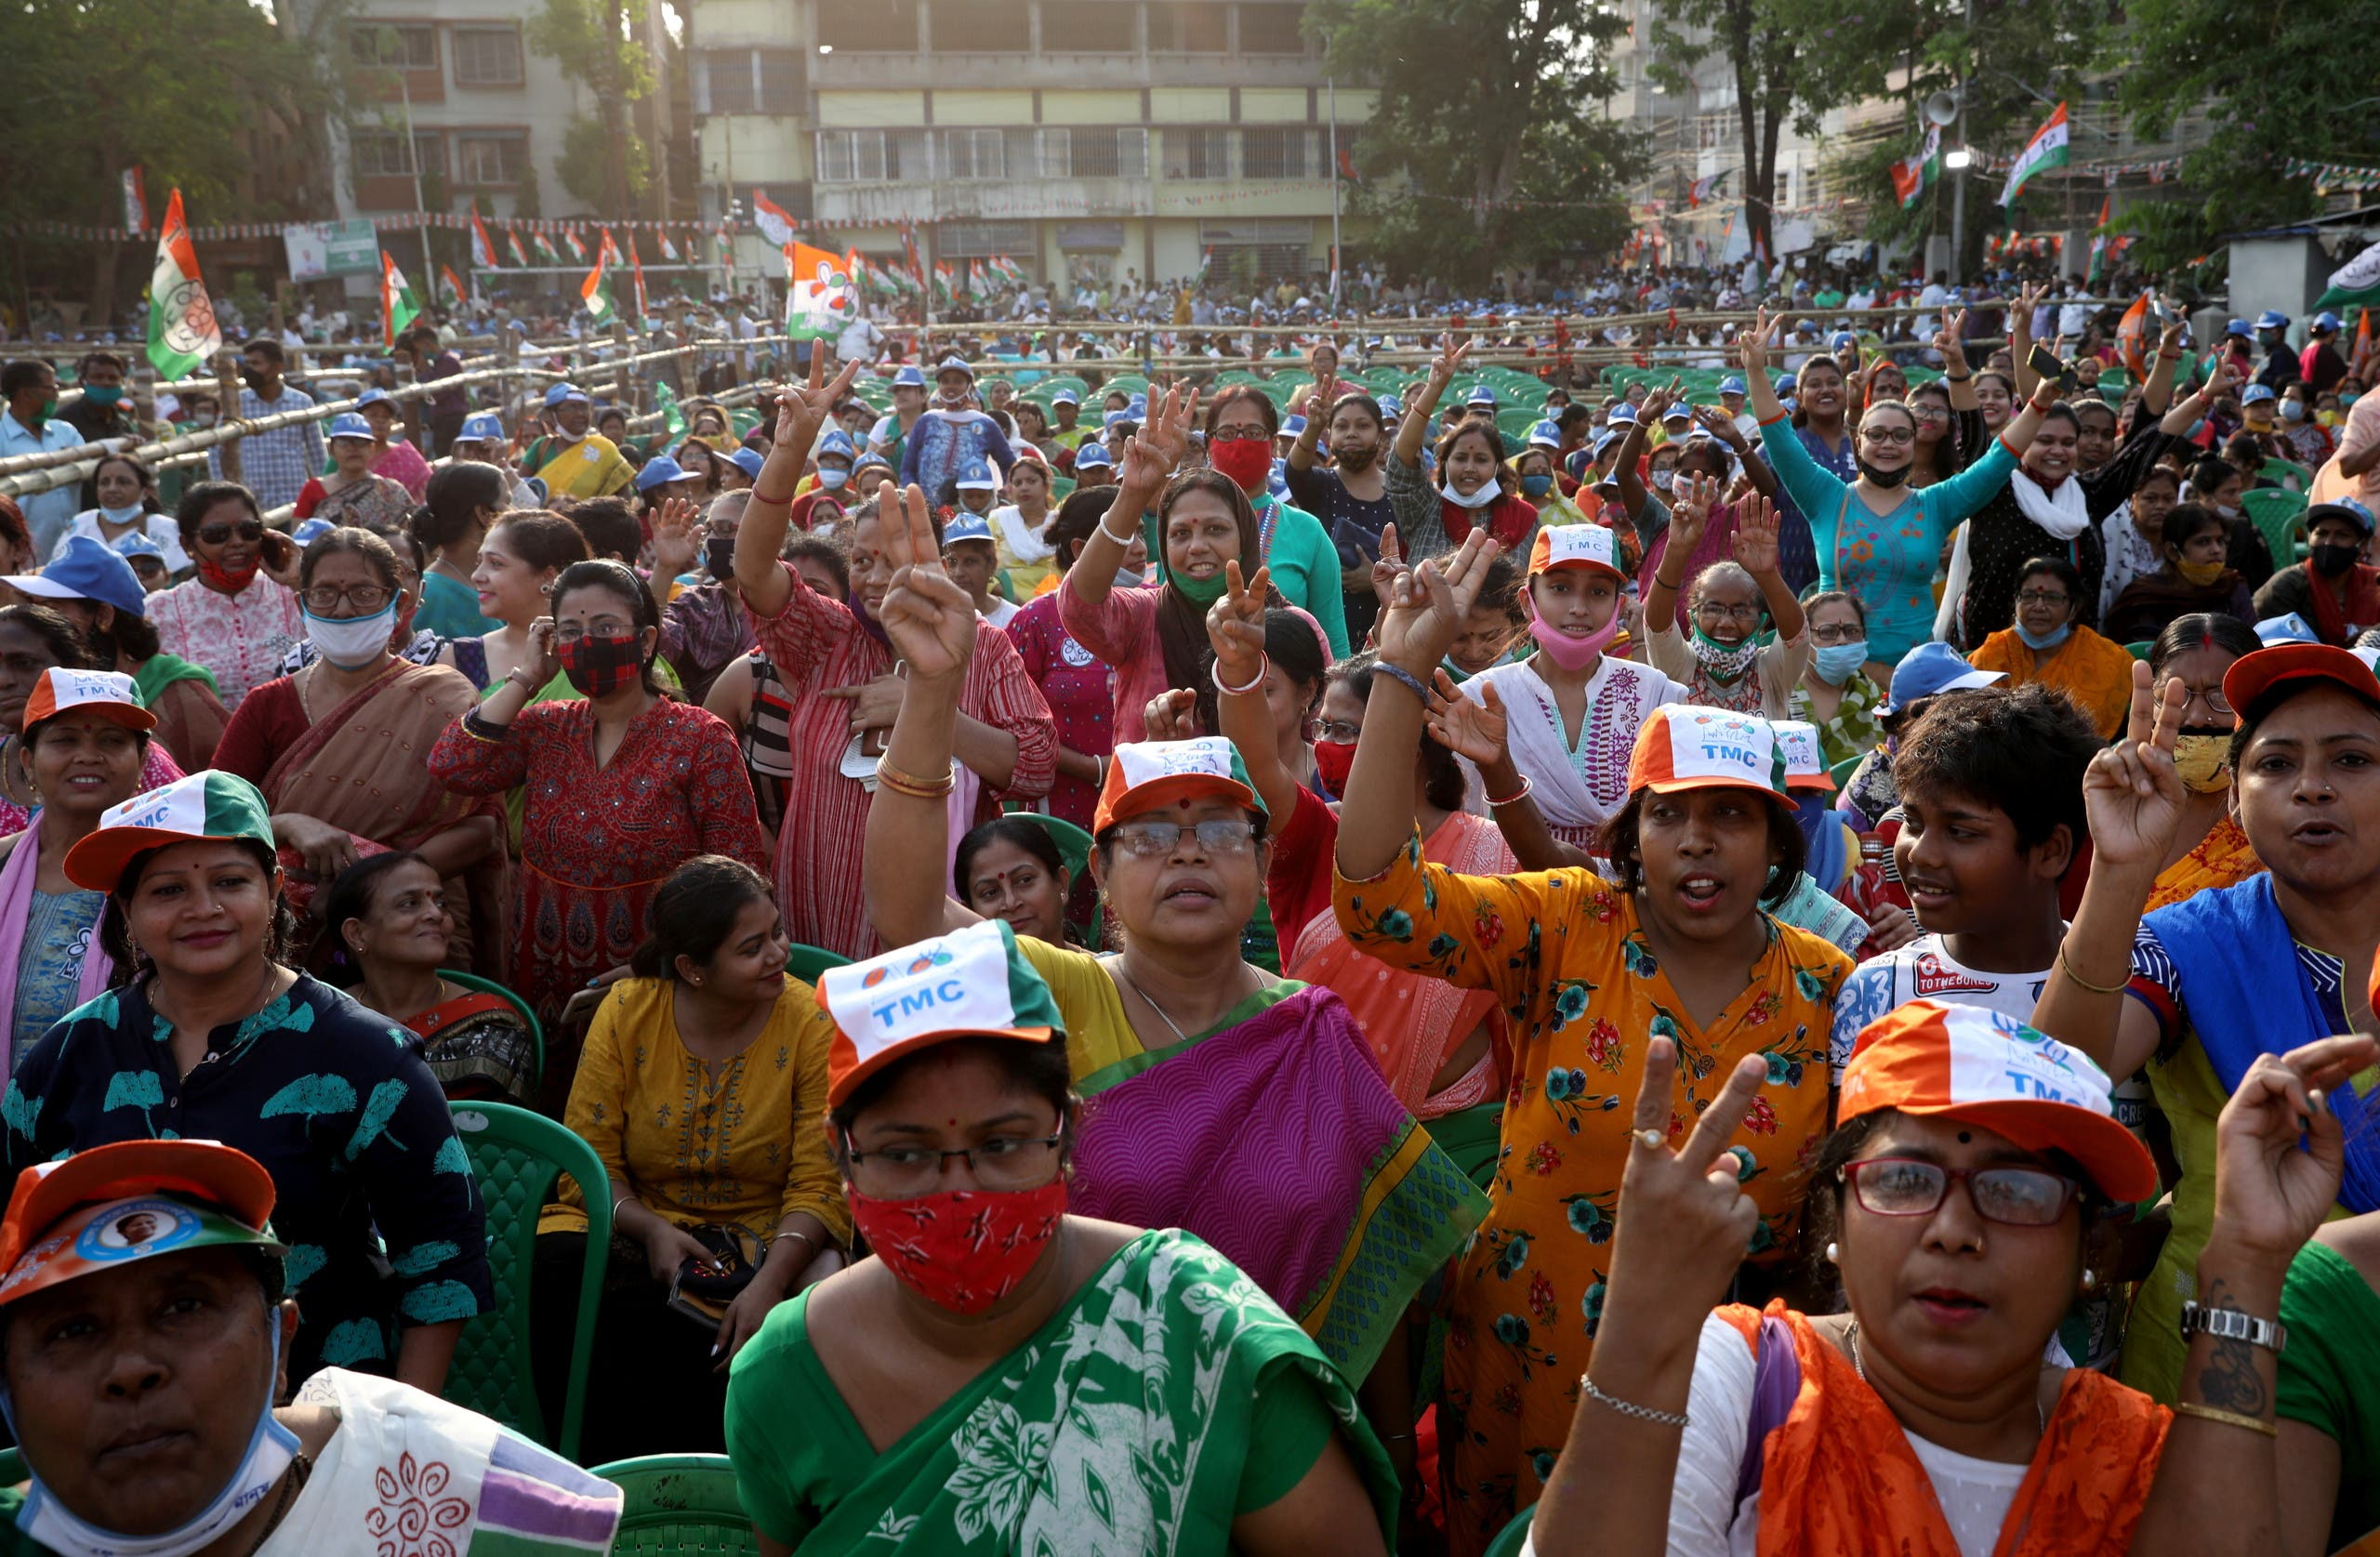 Supporters of the Chief Minister of the eastern state of West Bengal and Trinamool Congress (TMC) Chief, Mamata Banerjee, attend an election campaign rally . (File photo: Reuters)